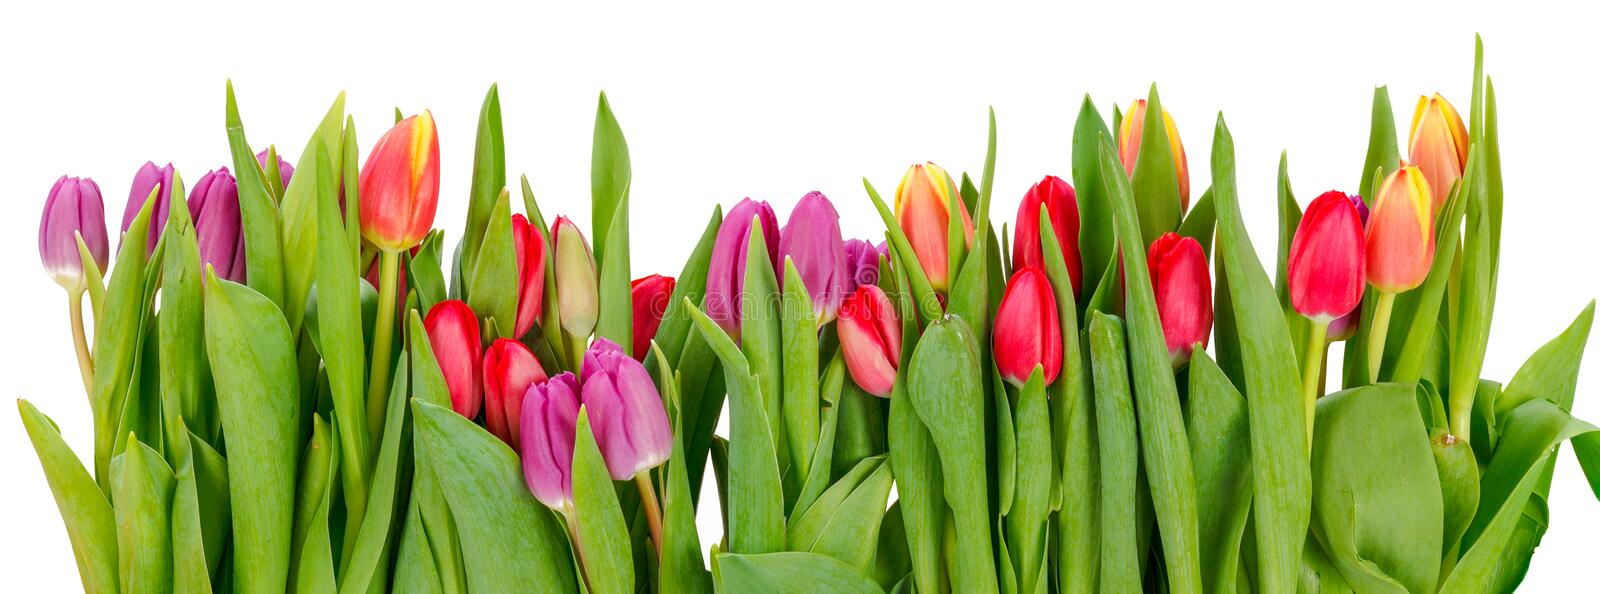 Row of tulips royalty free stock images